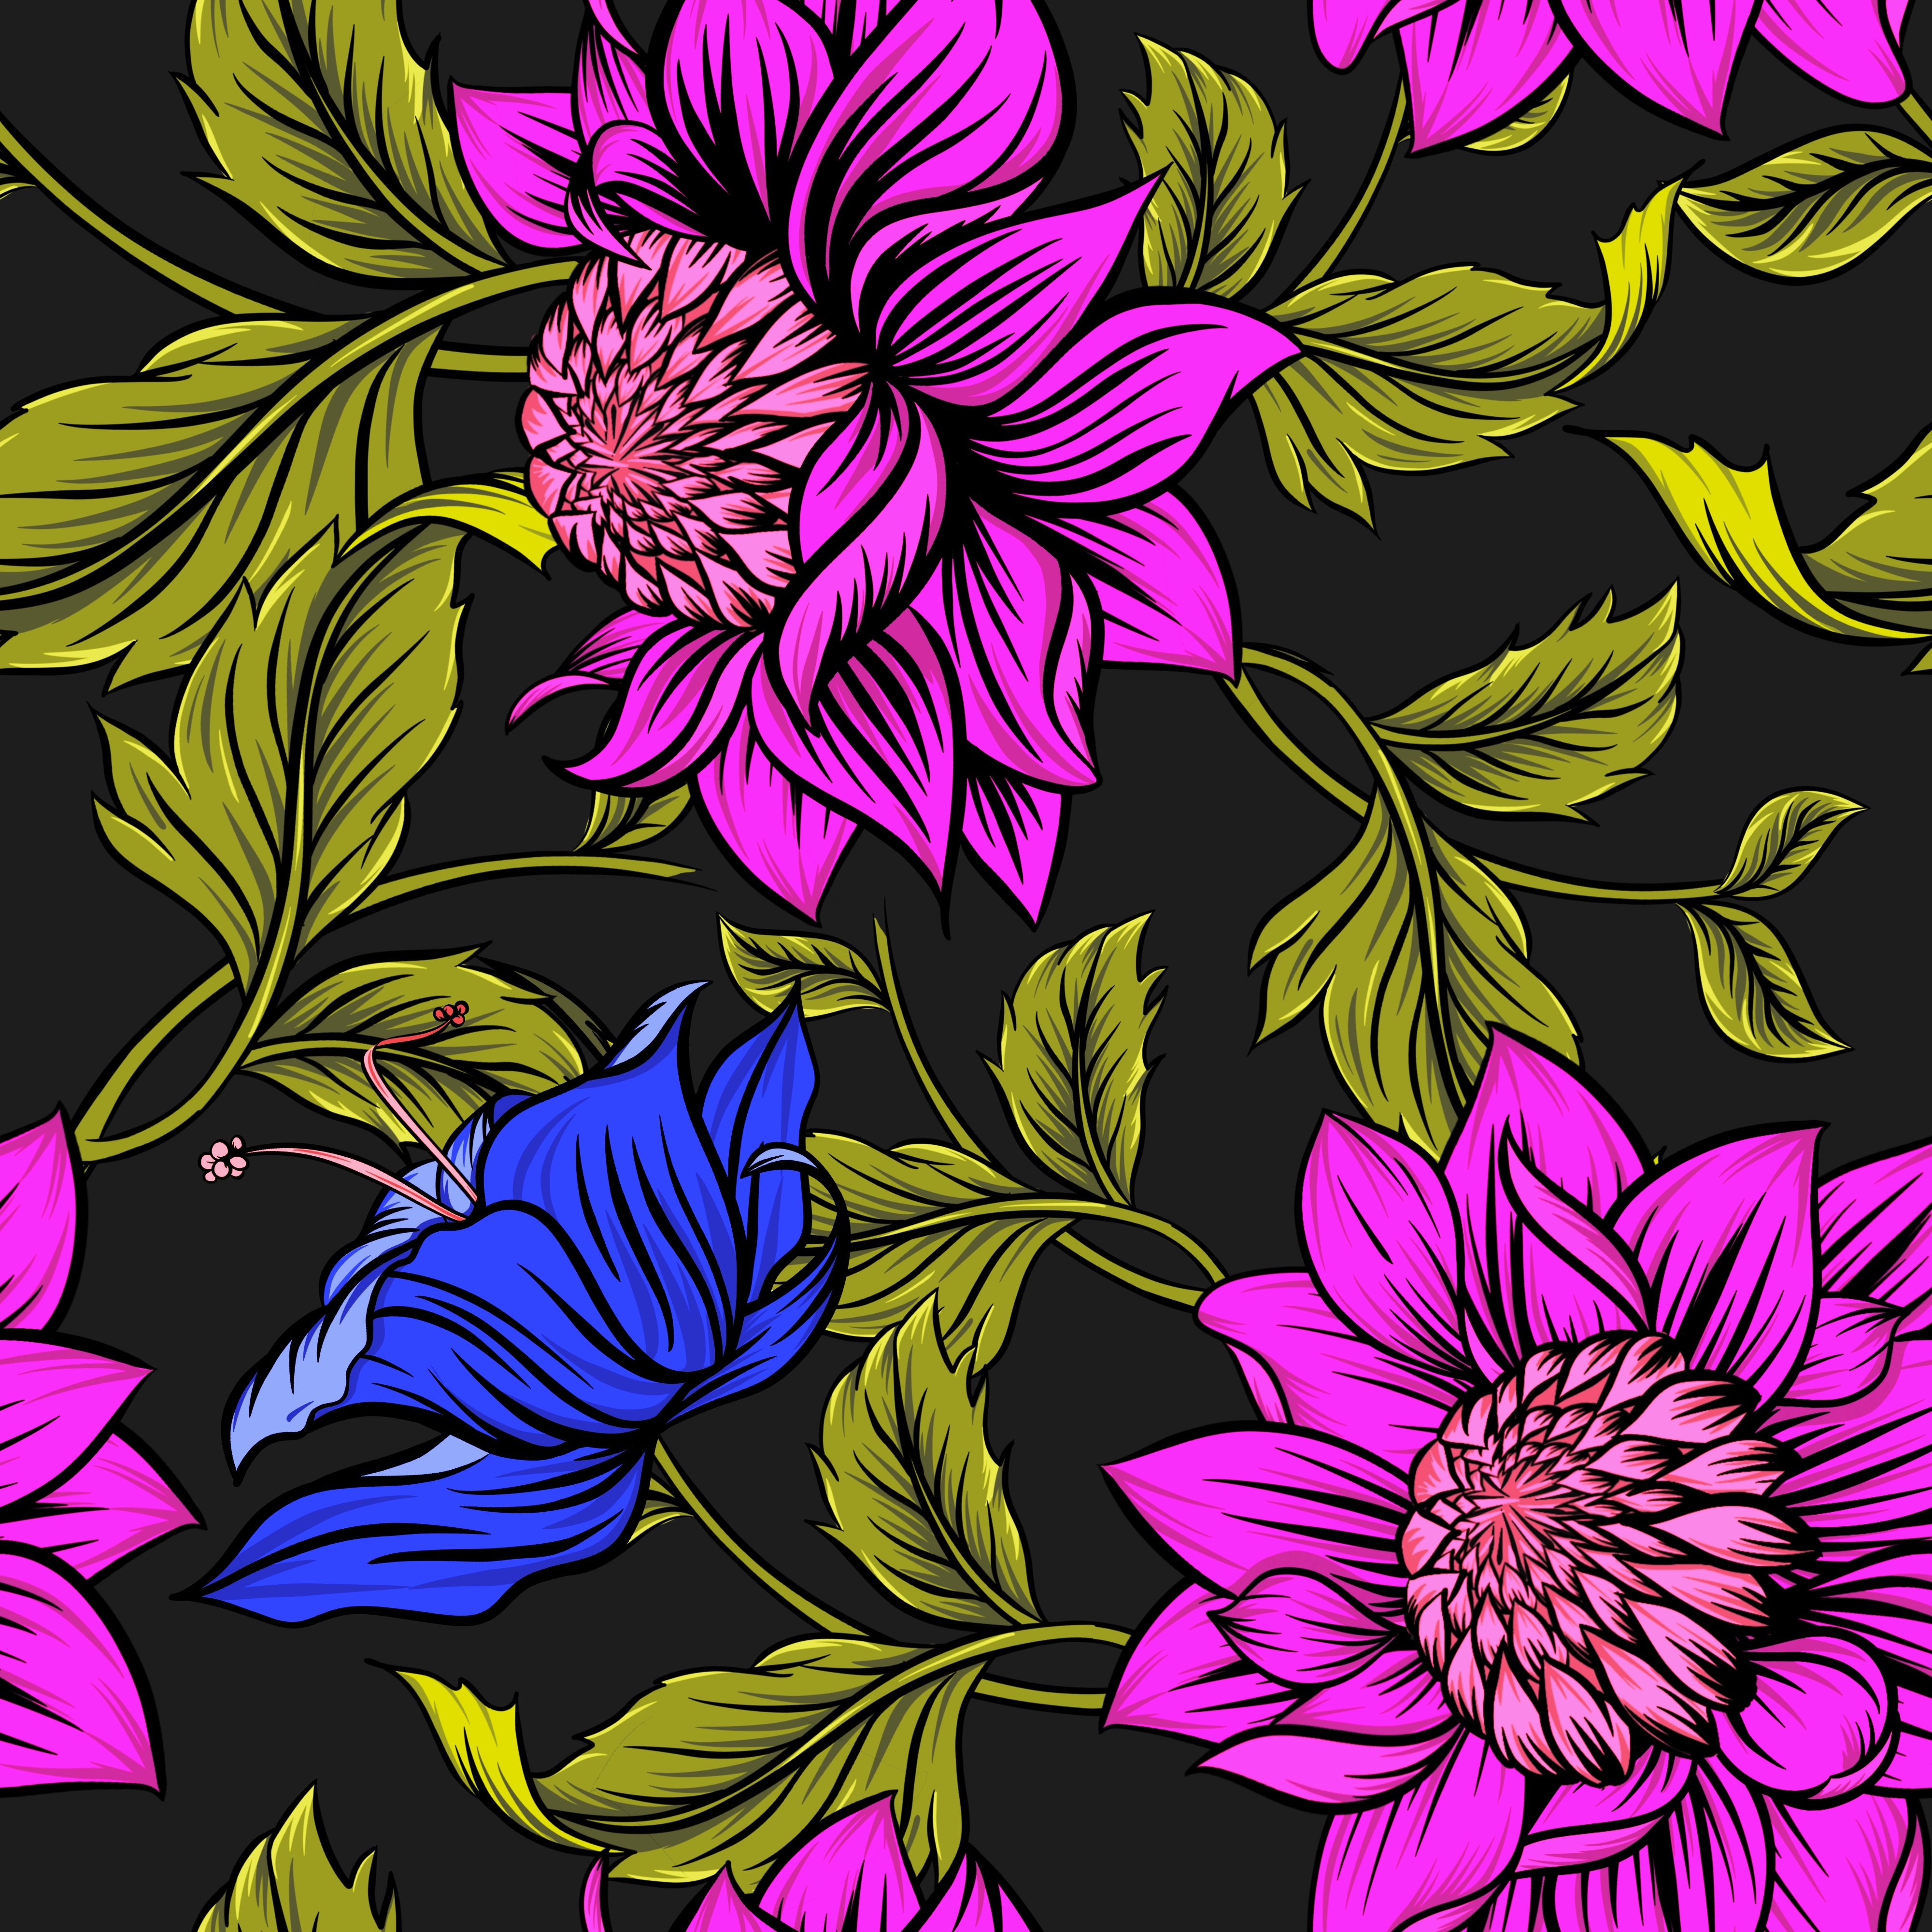 108291 Screensavers and Wallpapers Petals for phone. Download Flowers, Texture, Leaves, Patterns, Bright, Multicolored, Motley, Petals, Textures pictures for free